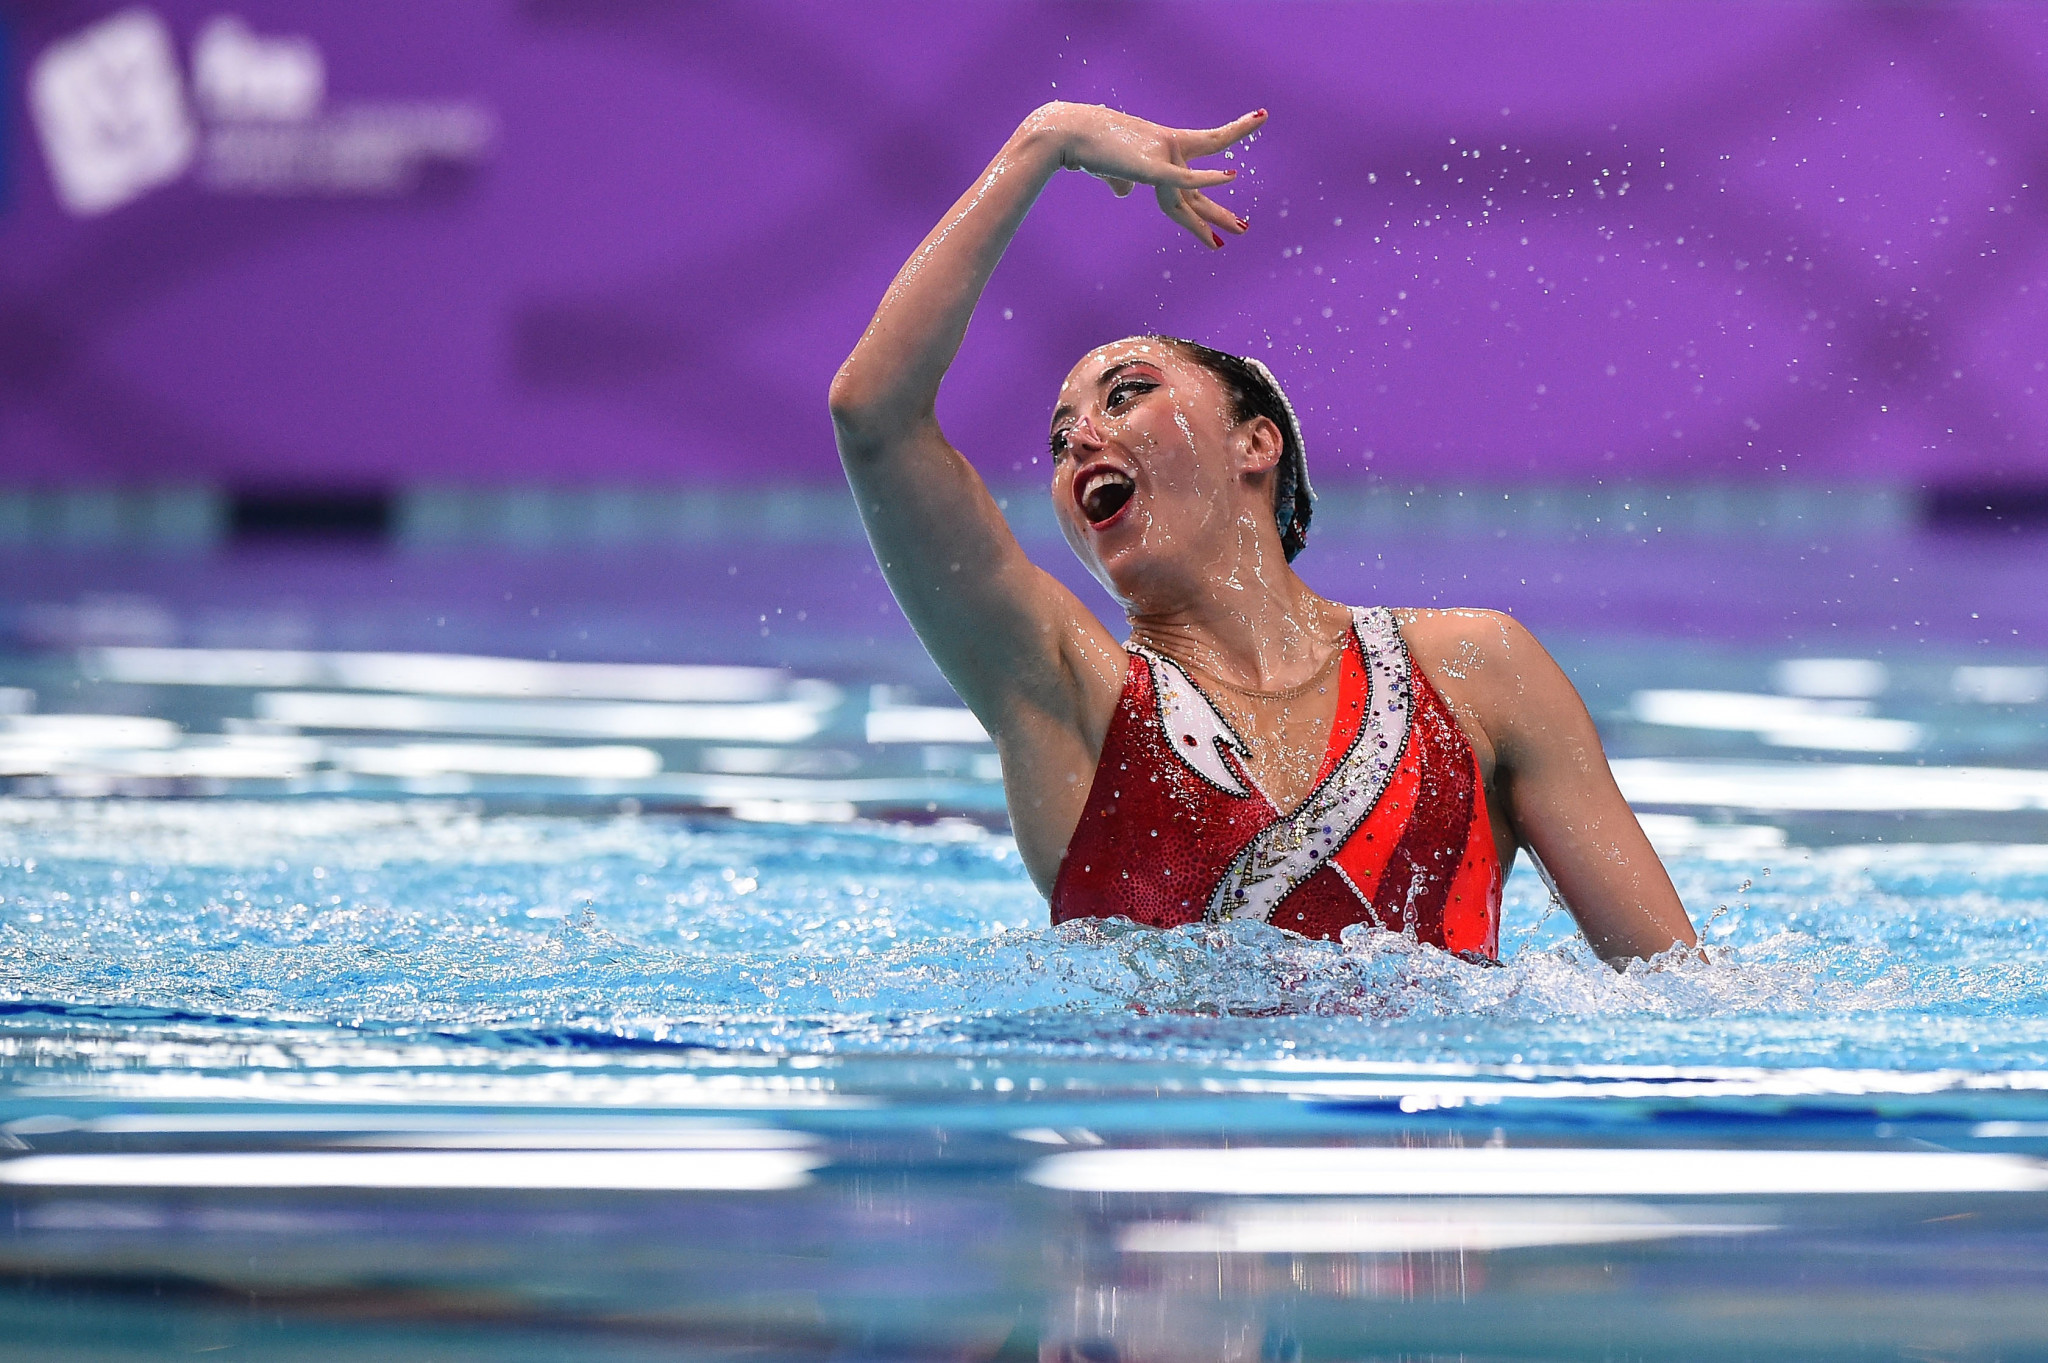 FINA Artistic Swimming World Series begins penultimate leg in Quebec City with Canada aiming to catch dominant Japan